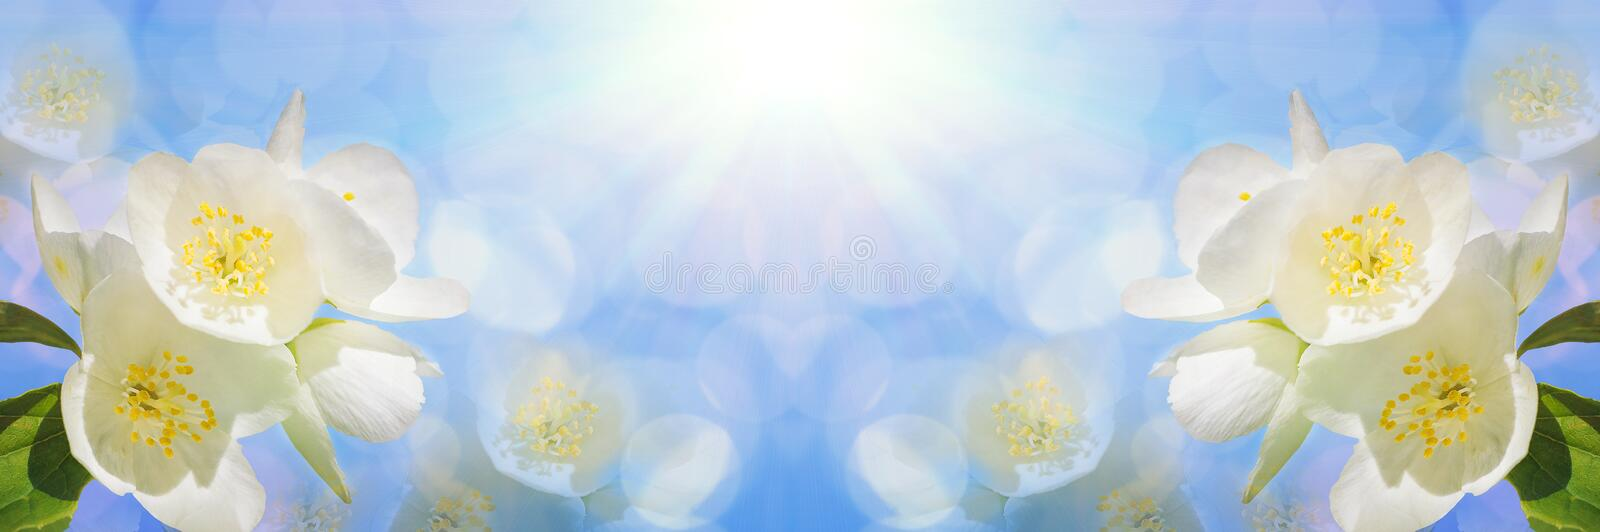 A branch of beautiful white jasmine flowers against a bright blue sky. Panoramic. Image royalty free stock image